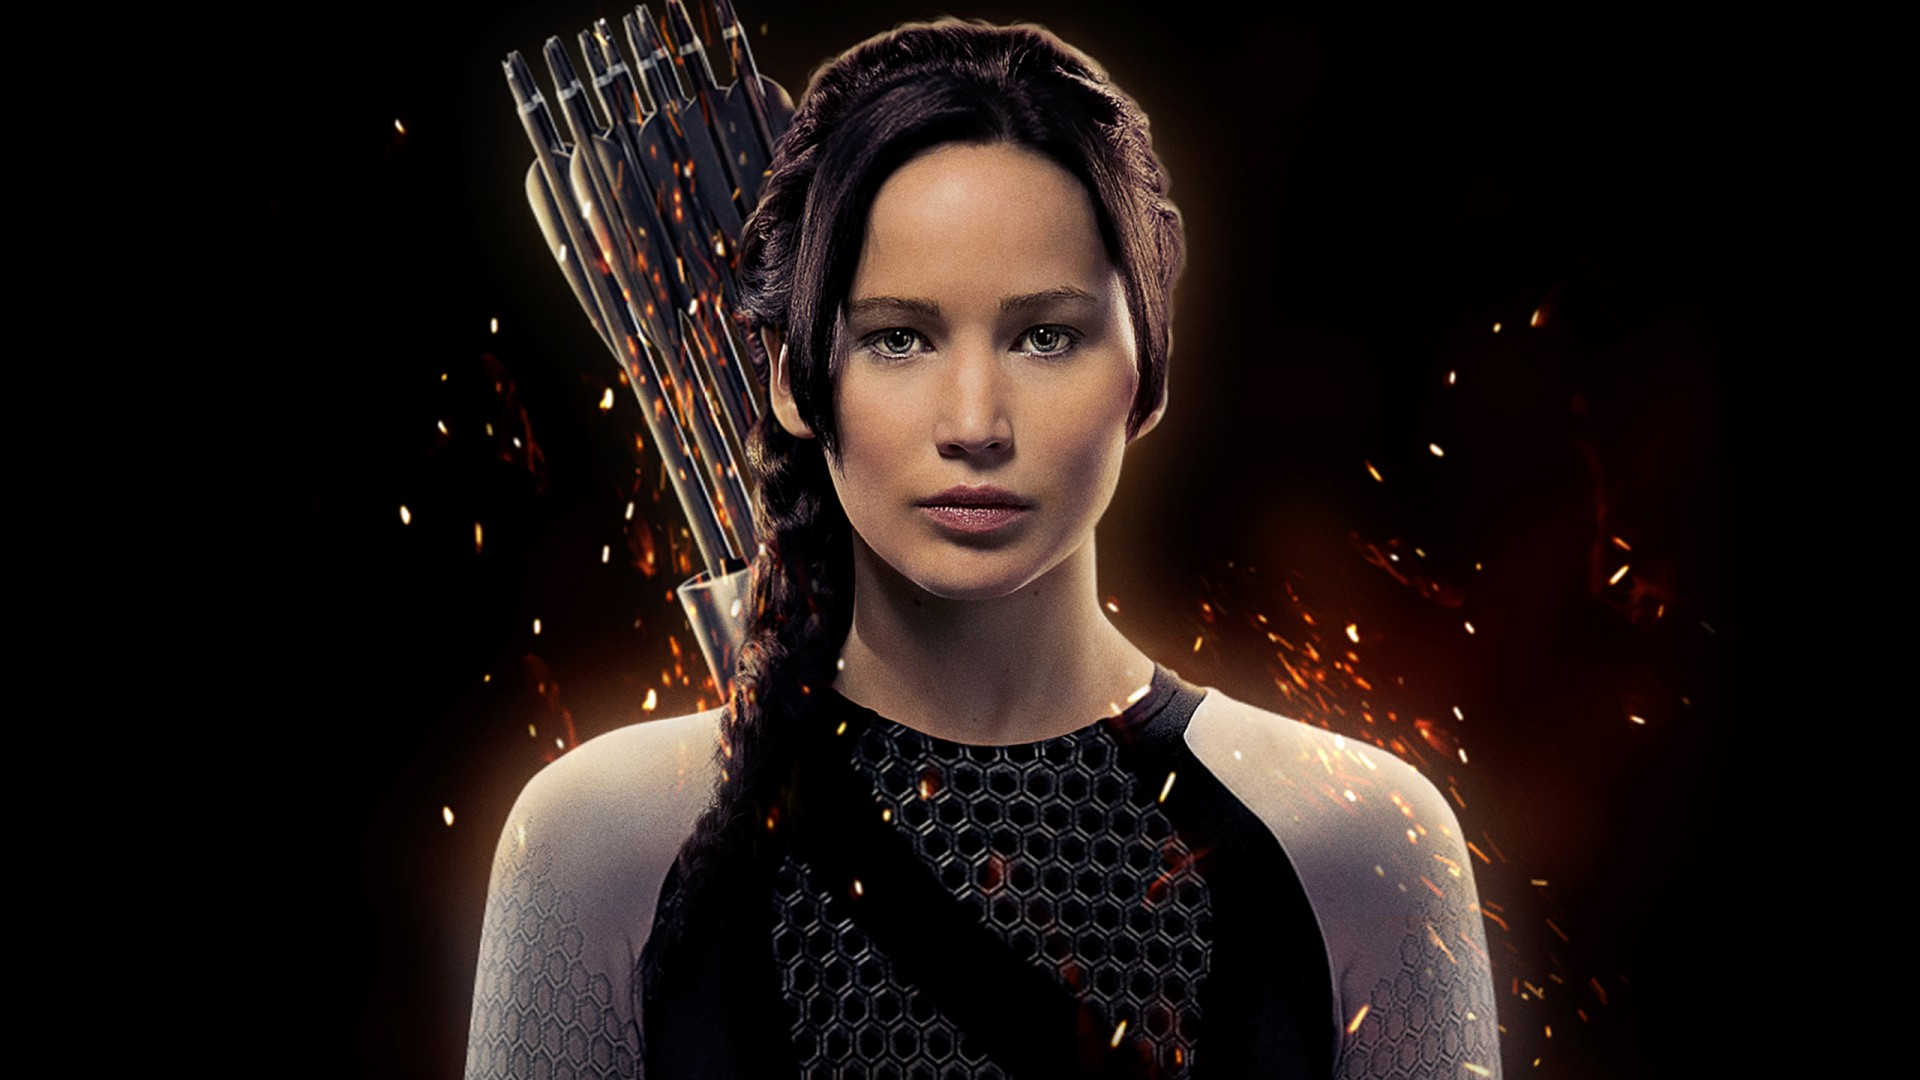 Cute Photography Wallpaper For Iphone Jennifer Lawrence As Katniss Wallpapers Hd Wallpapers